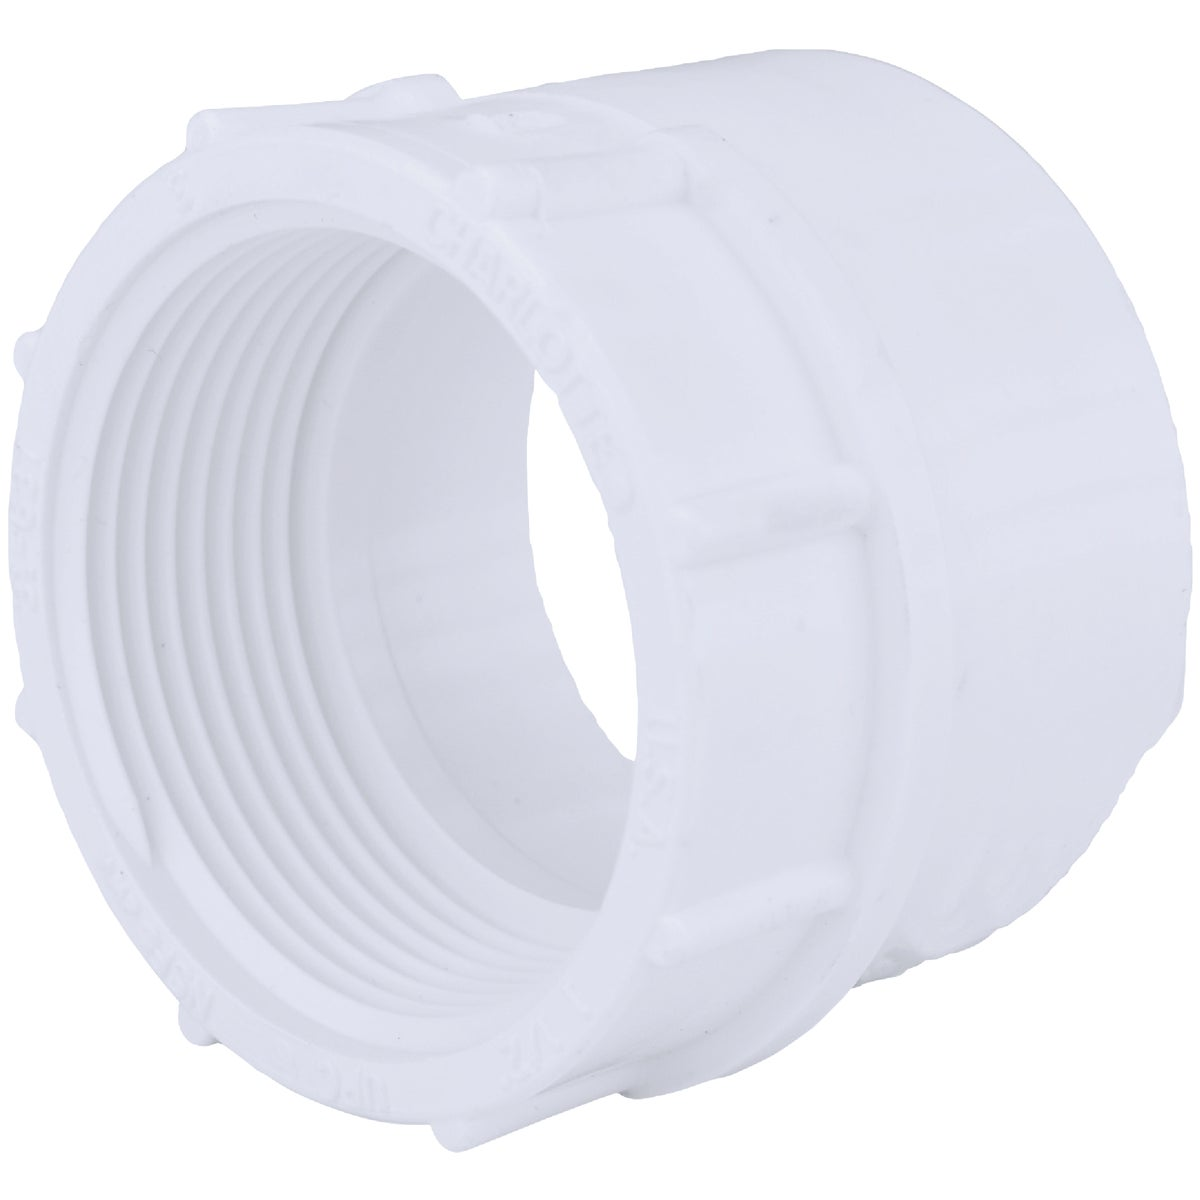 "1-1/2""DWV FEMALE ADAPTER - 70315 by Genova Inc  Pvc Dwv"